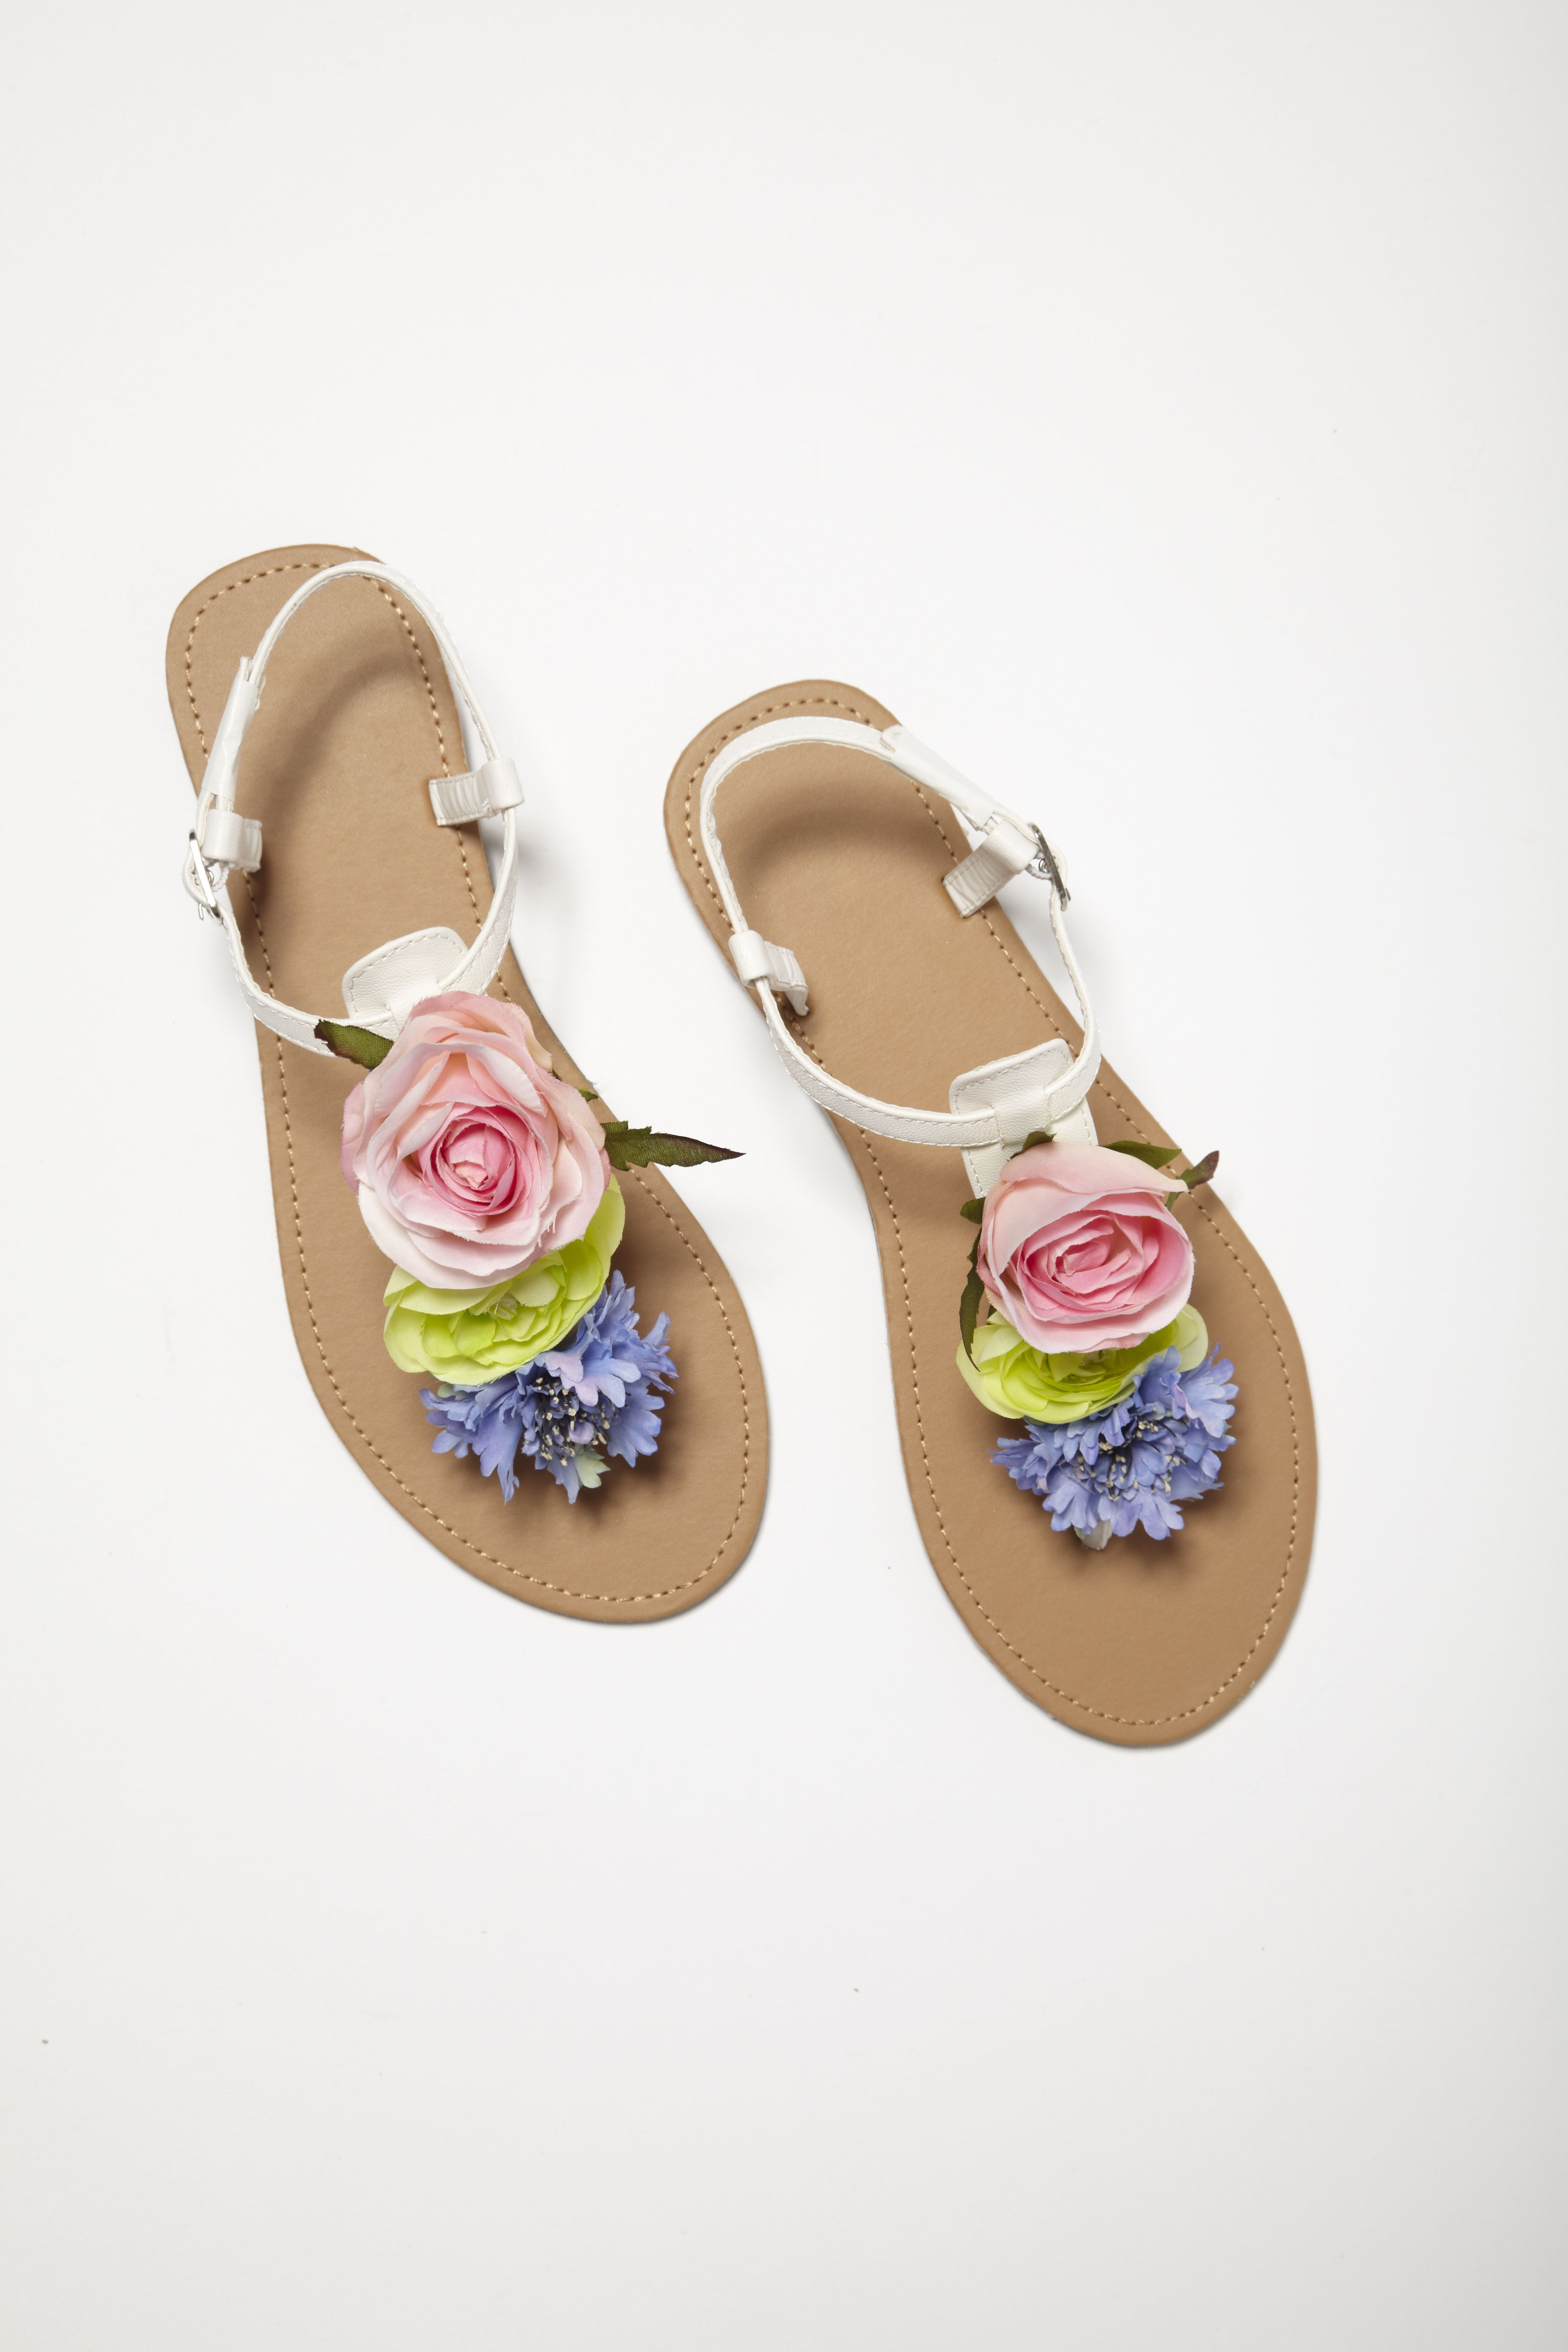 DIY YOUR OWN FLORAL SANDALS IN 4 EASY STEPS DIY FASHION